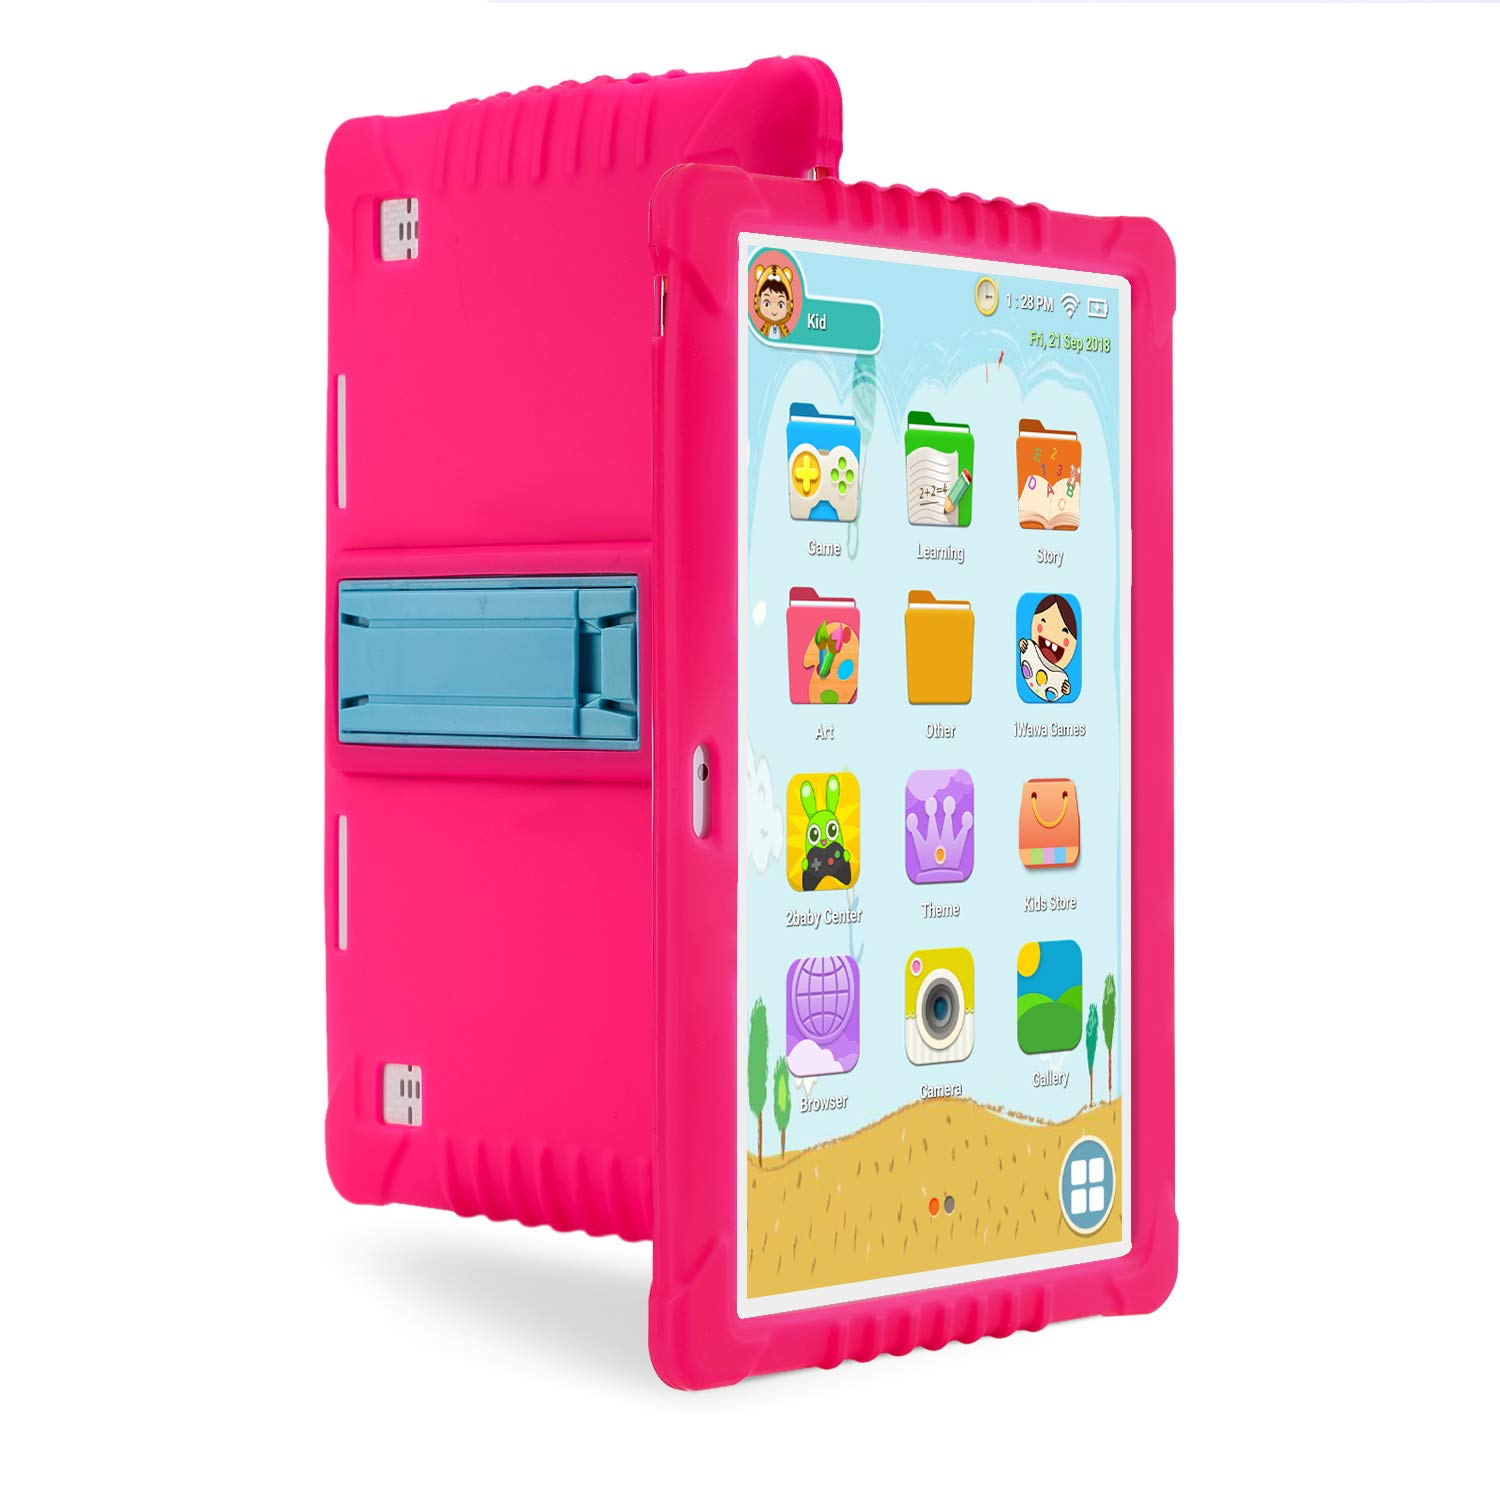 3G Tablet Bambini,SANNUO 10 Pollici Kids Tablet con WiFi (Android 6.0, Quad-Core, 1 + 16 GB, Doble Cámara, Google Play, Juegos Educativos)